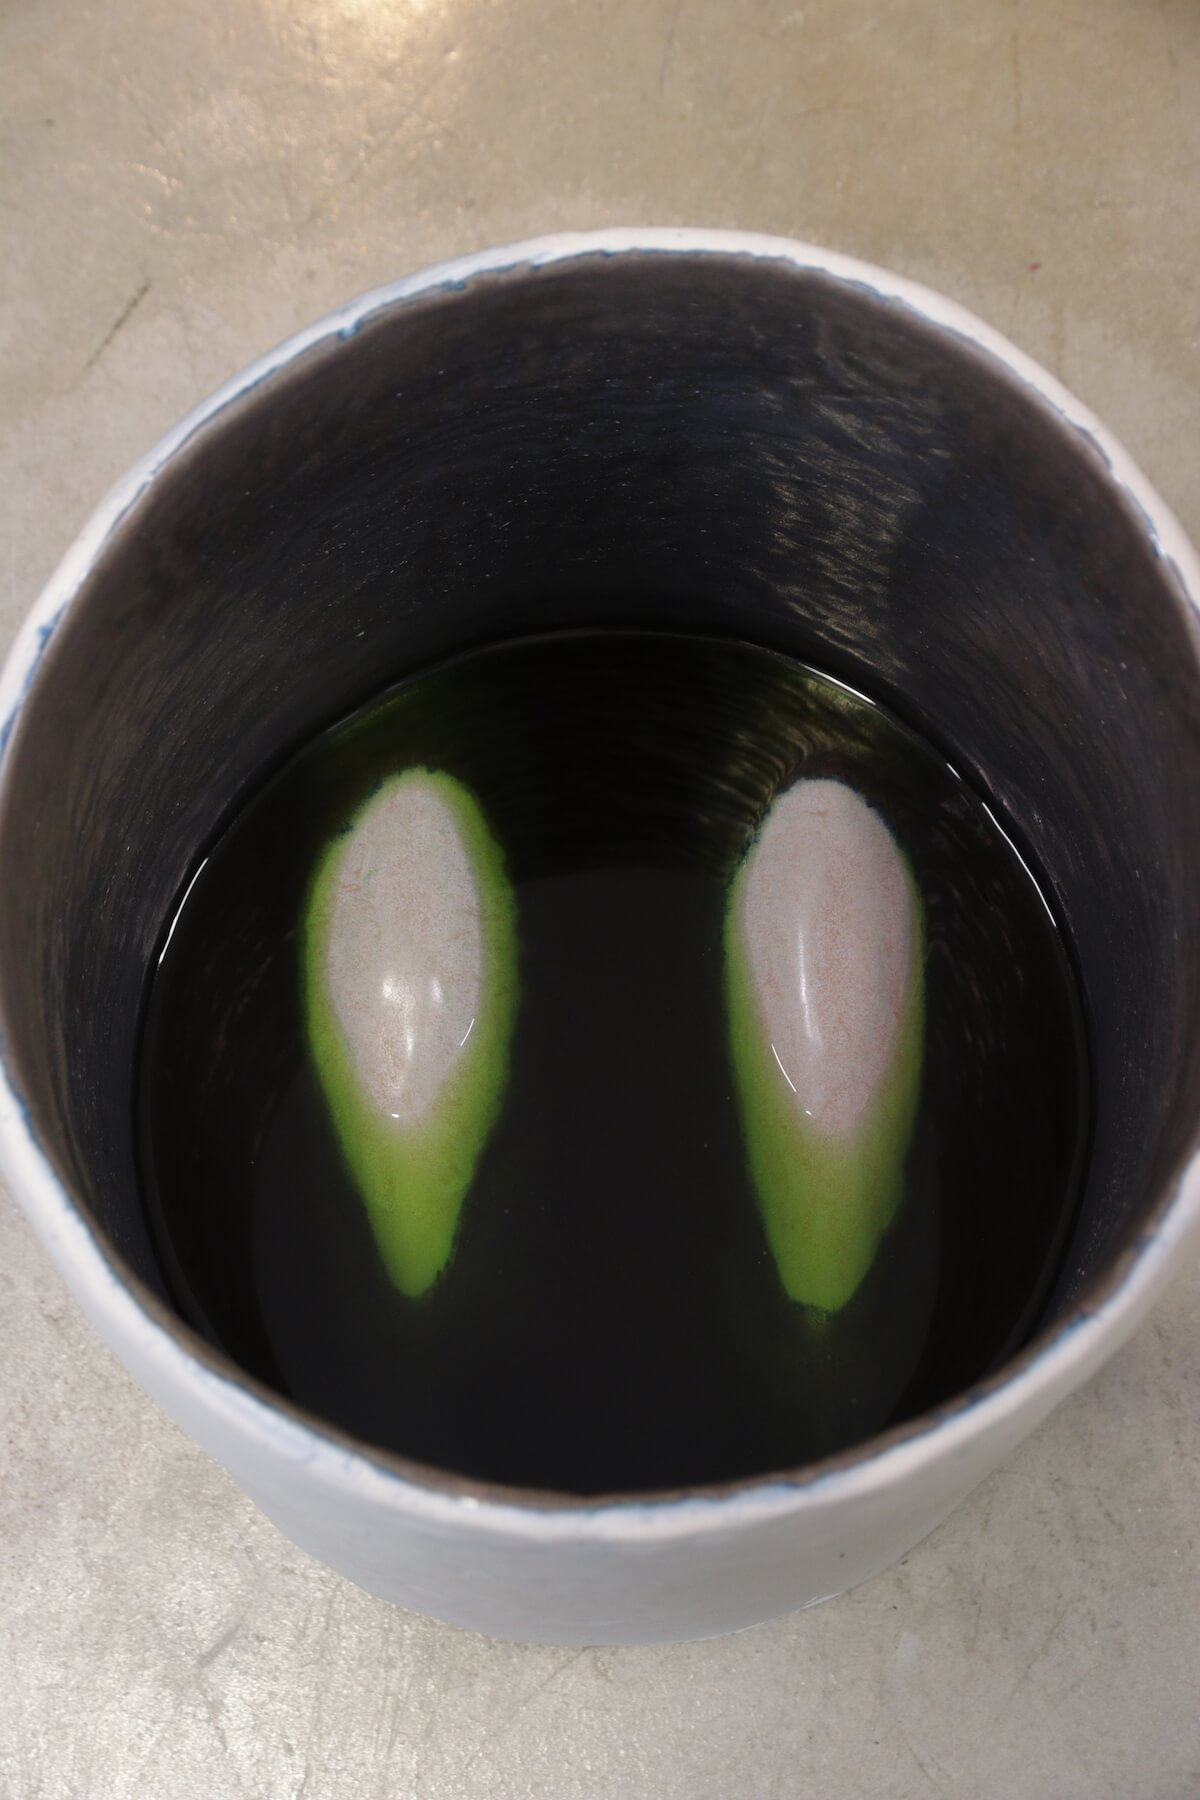 Interior of white/cream ceramic cylinder. Two rounded shapes poke out of green liquid-looking glaze.